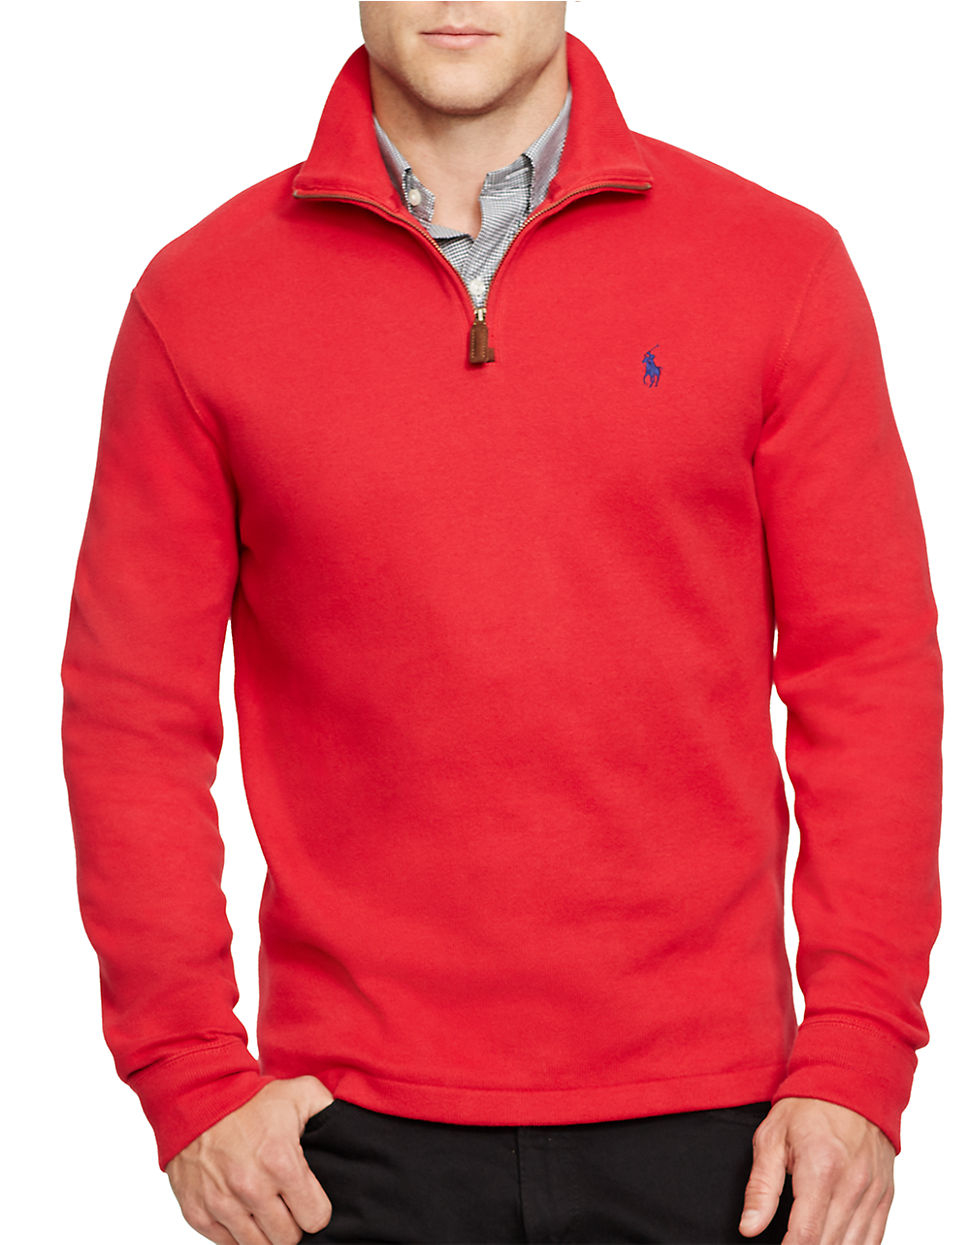 polo ralph lauren french rib half zip pullover in red for men lyst. Black Bedroom Furniture Sets. Home Design Ideas